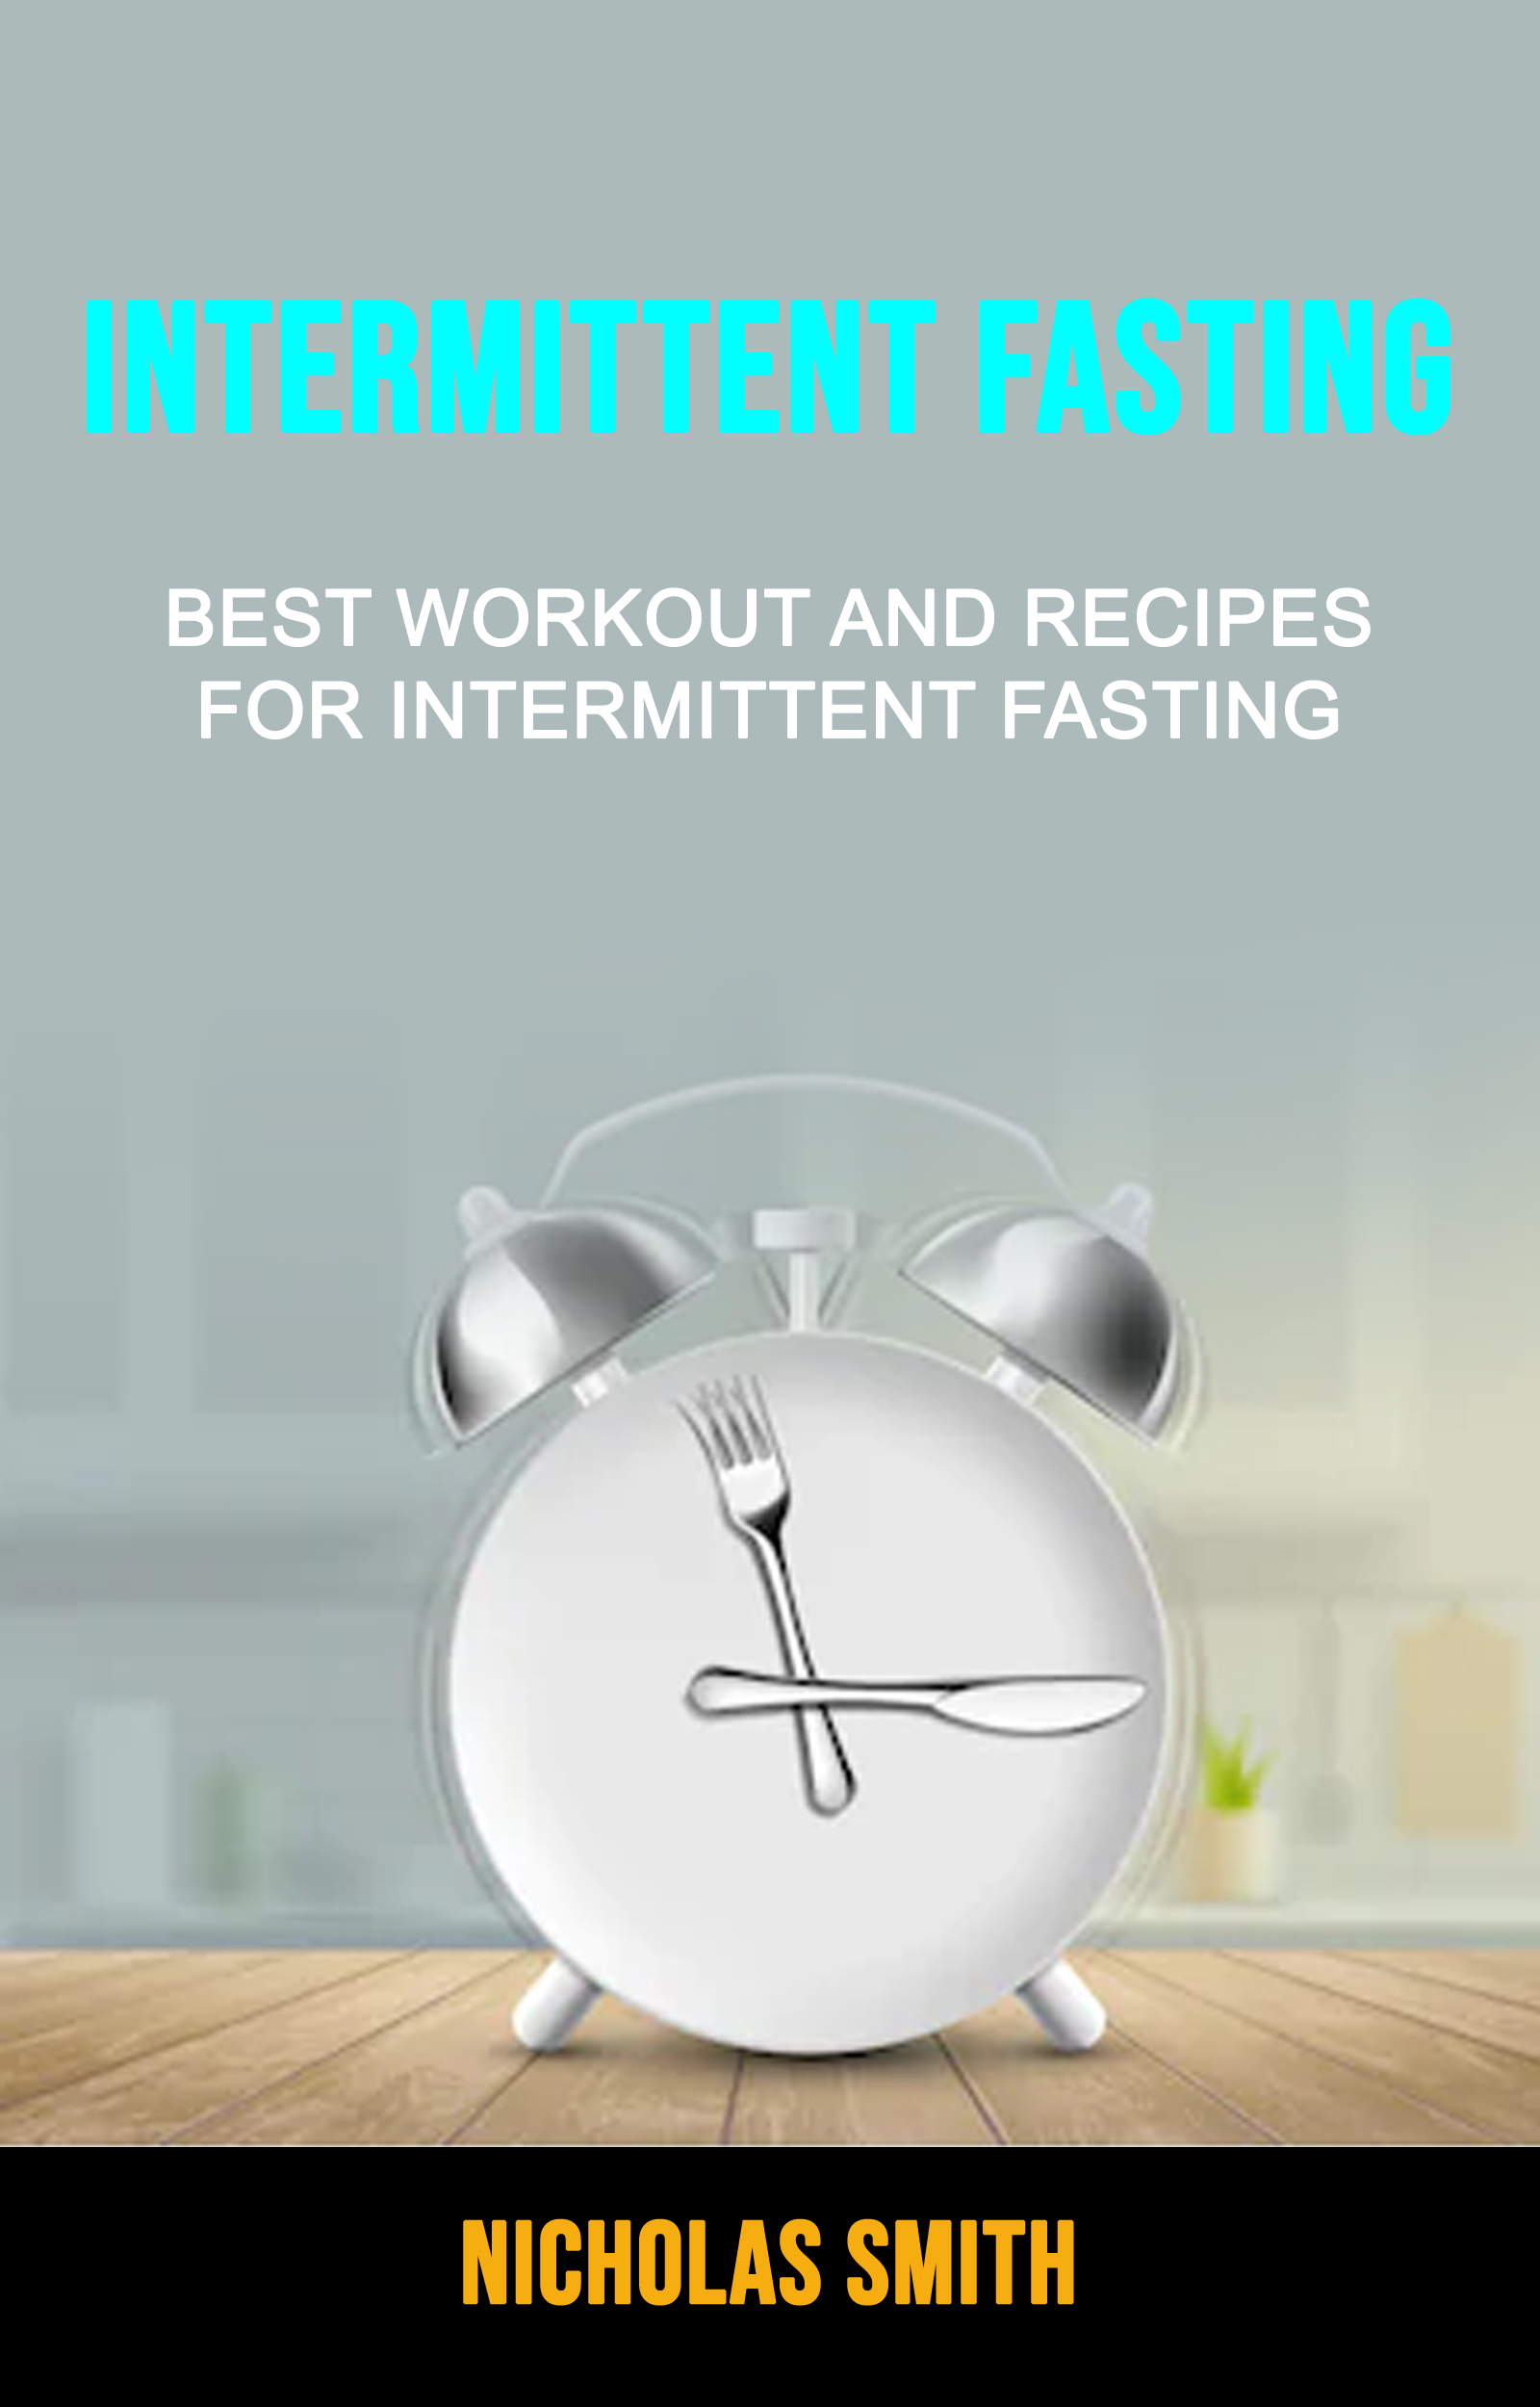 Intermittent fasting: best workout and recipes for intermittent fasting